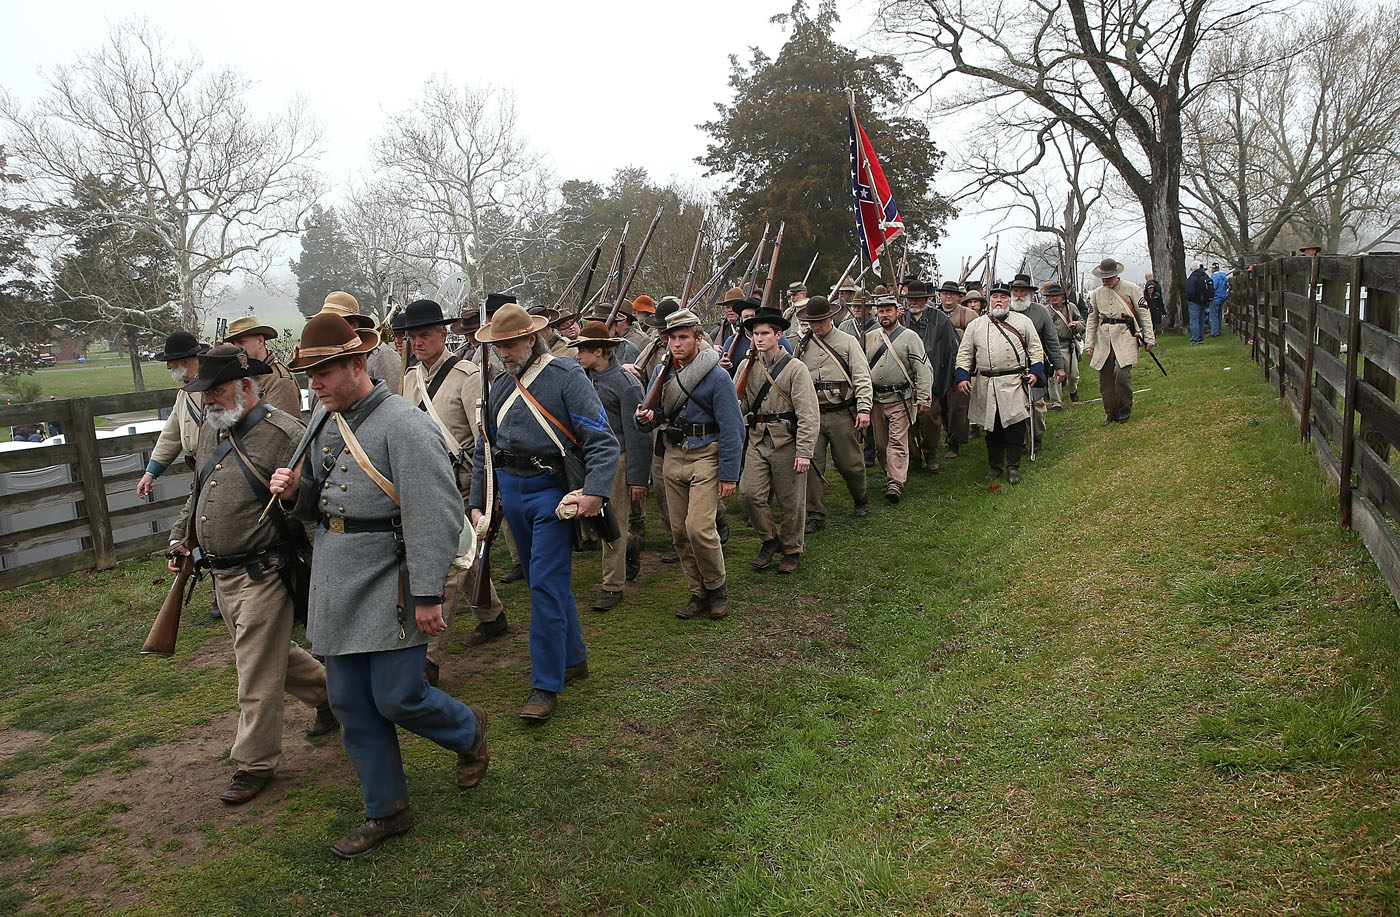 civil war the road to appomattox The battle of appomattox court house page includes history articles, photo galleries, maps, and other recommended links for this 1865 civil war battle in virginia.